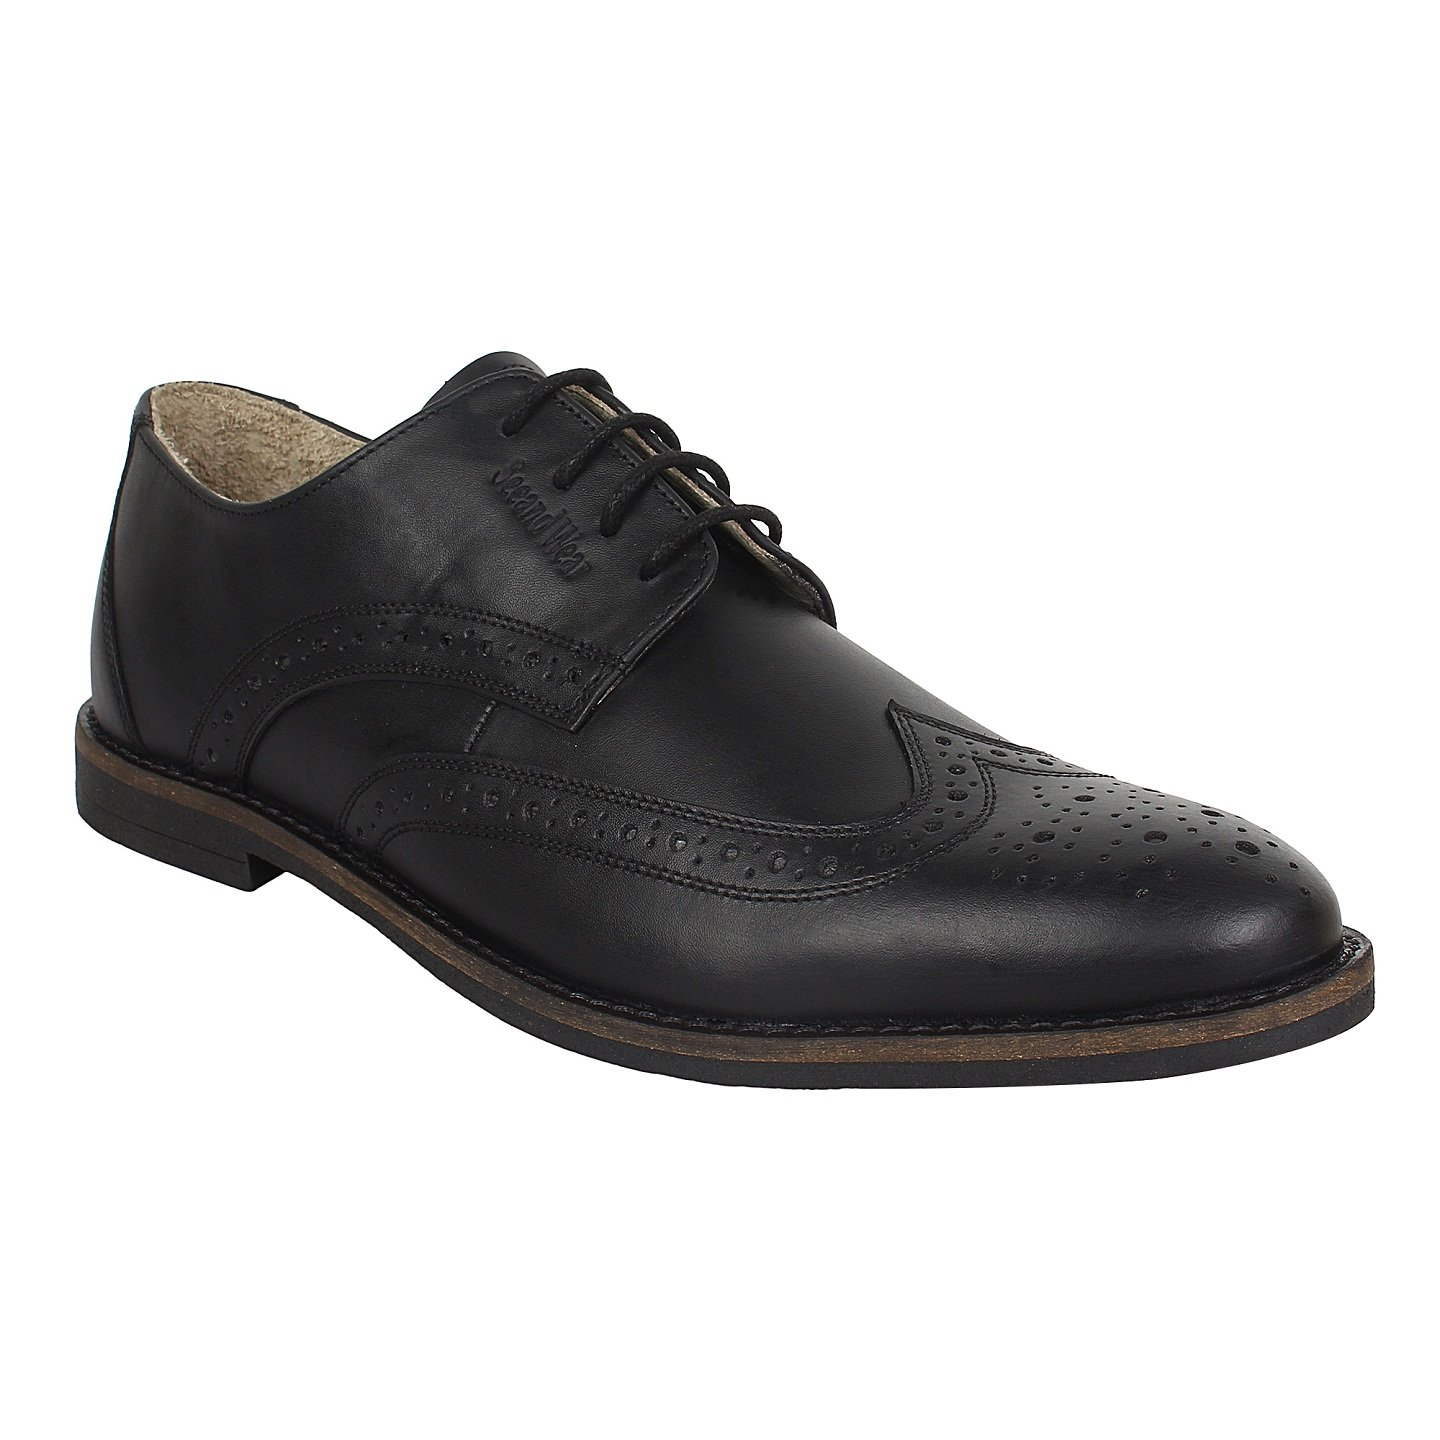 d8e2c324c1c7b SeeandWear Black Brogue Formal Shoes for Men Genuine Leather Pointed Lace  Up Shoe